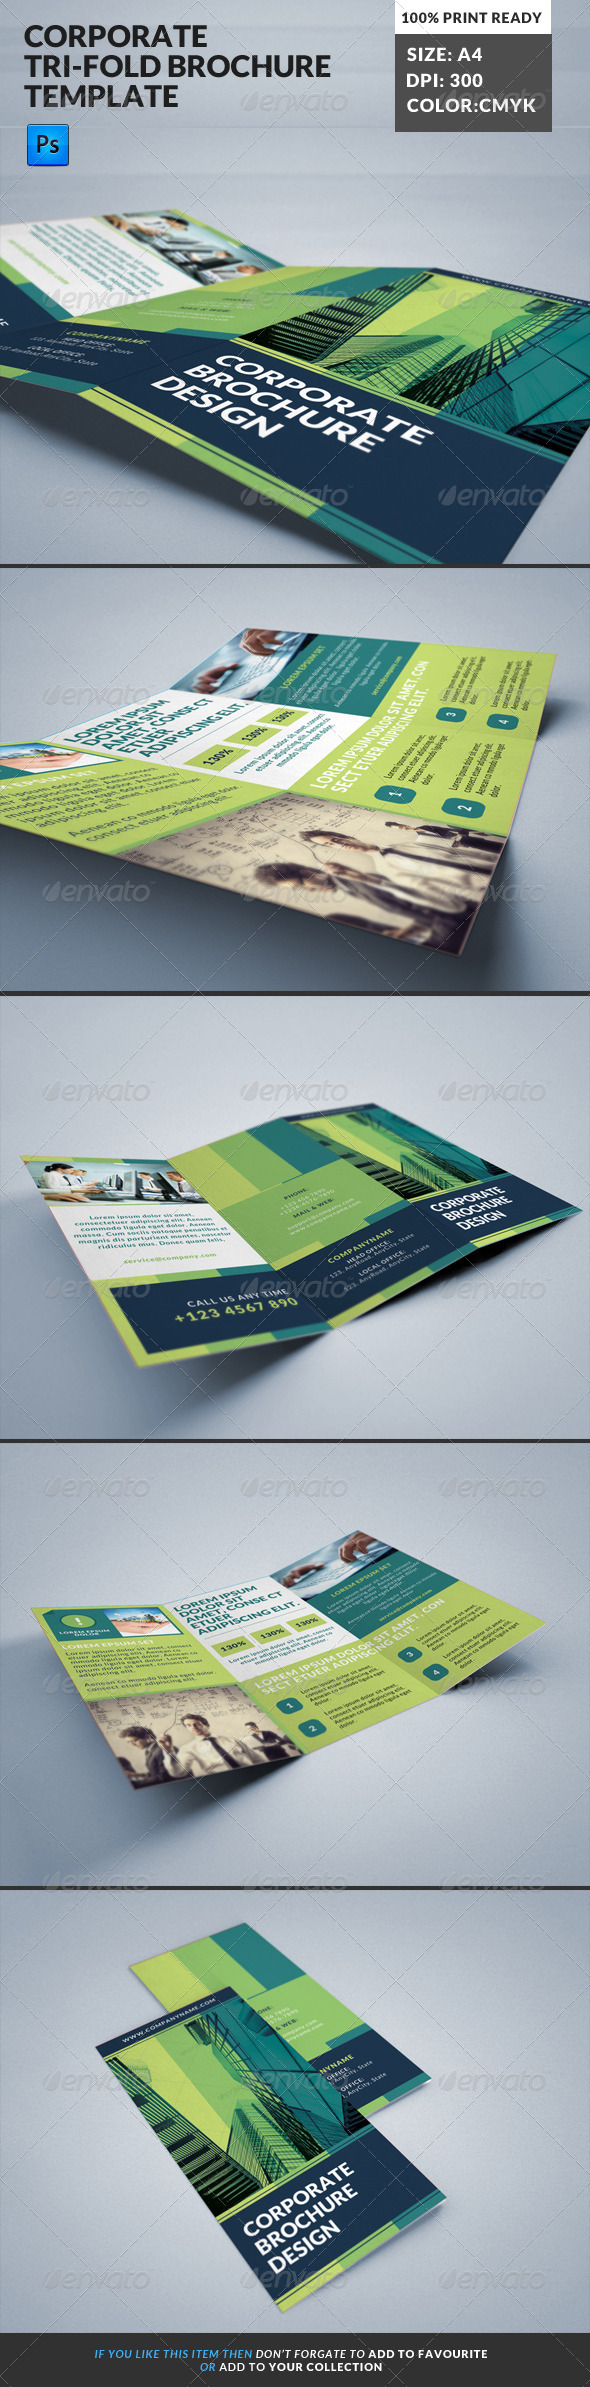 Corporate Tri-Fold Brochures Template 13